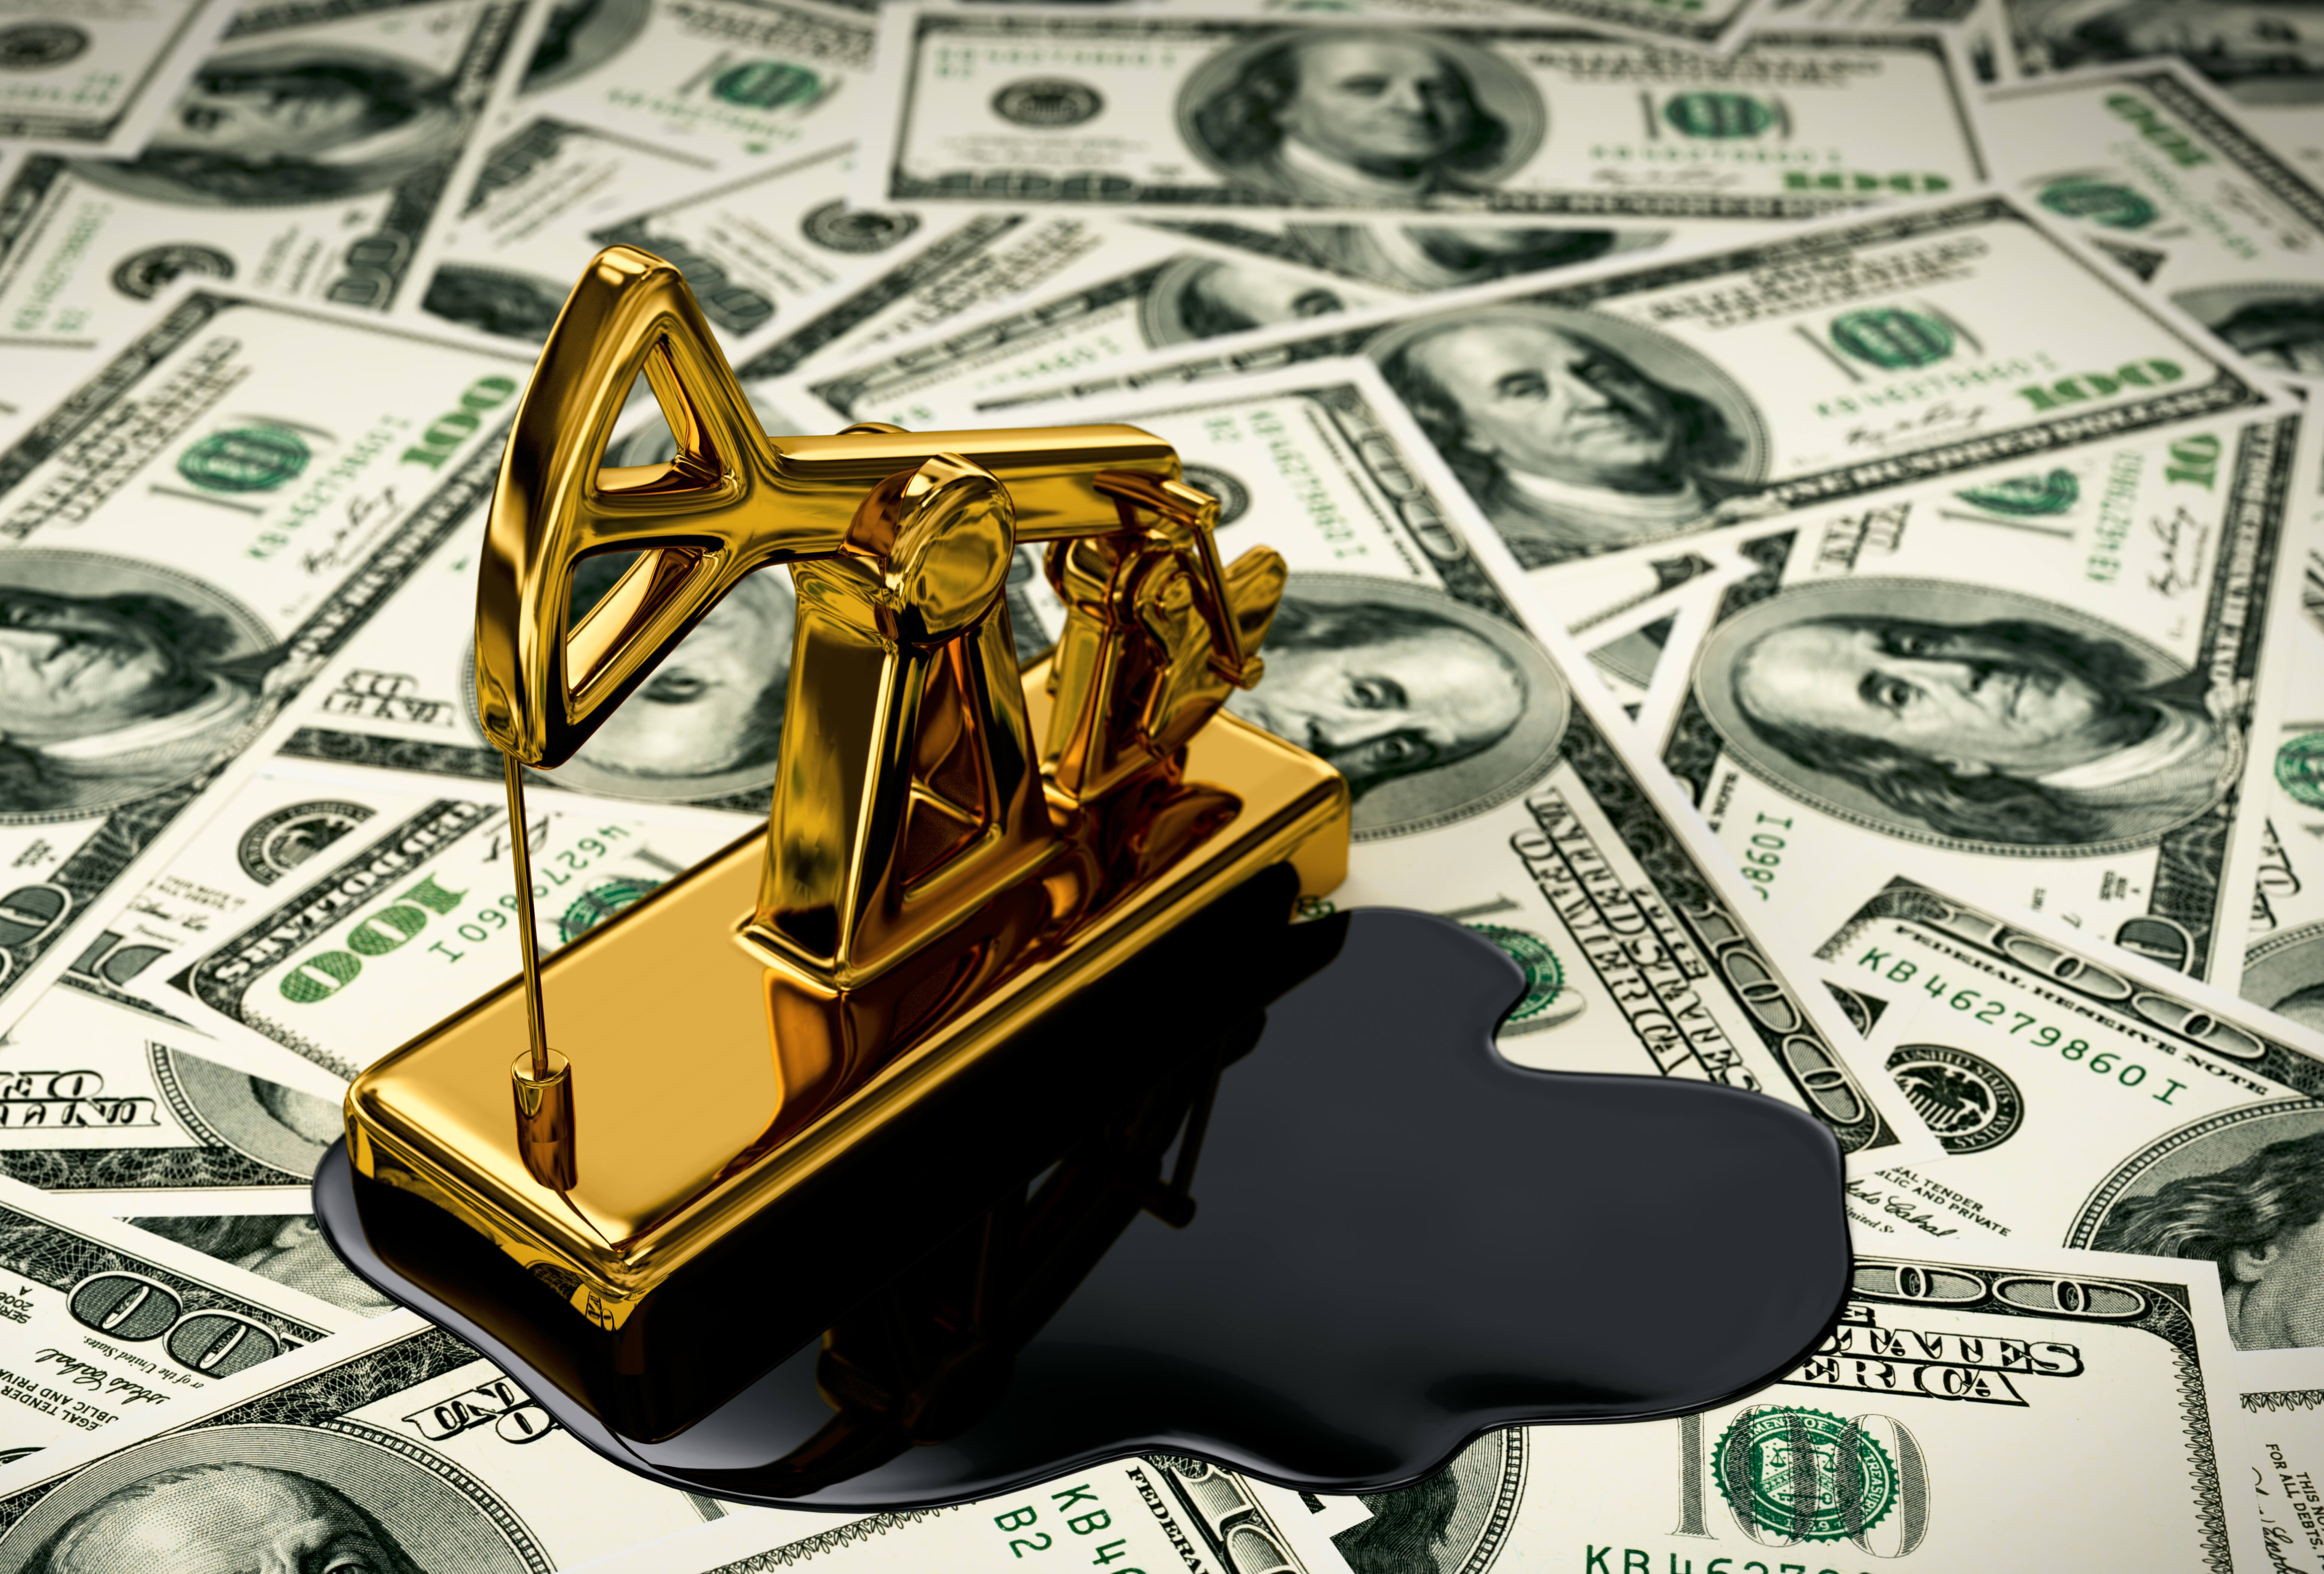 Oil and gold prices: Commodities react to China's economic problems